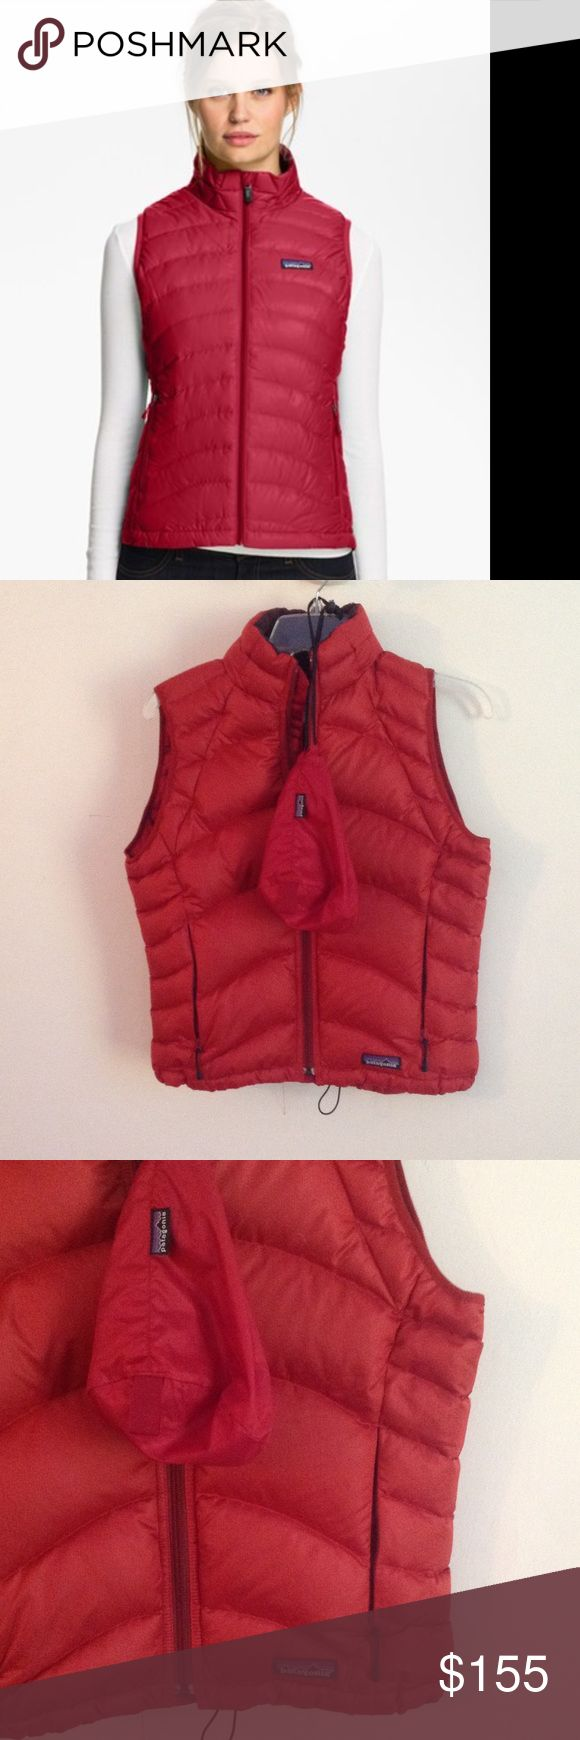 +++NWOT $220 RETAIL FOLDABLE DOWN PUFFER VEST+++ +++NWOT $220.00 PLUS TAX RETAIL RARE SOLD OUT EVERYWHERE. FOLDABLE DOWN PUFFER VEST WOMENS SIZE SMALL BUT HAS AN ADJUSTABLE BUNGIE CORD BOTTOM TO BE ABLE TO FIT A RANGE OF SIZEZ XS/S. FLAWLESS CONDITION, COMES WITH ORIGINAL BAG FOR EASY STORAGE, THIS VEST IS WATERPROOF. TRULY A MUST HAVE STAPLE FOR ALL WINTER. +++PRICED TO SELL SAME DAY, OFFERS WELCOME THROUGH THE OFFER OPTION, NO TRADES OR HOLDS+++ Patagonia Jackets & Coats Vests